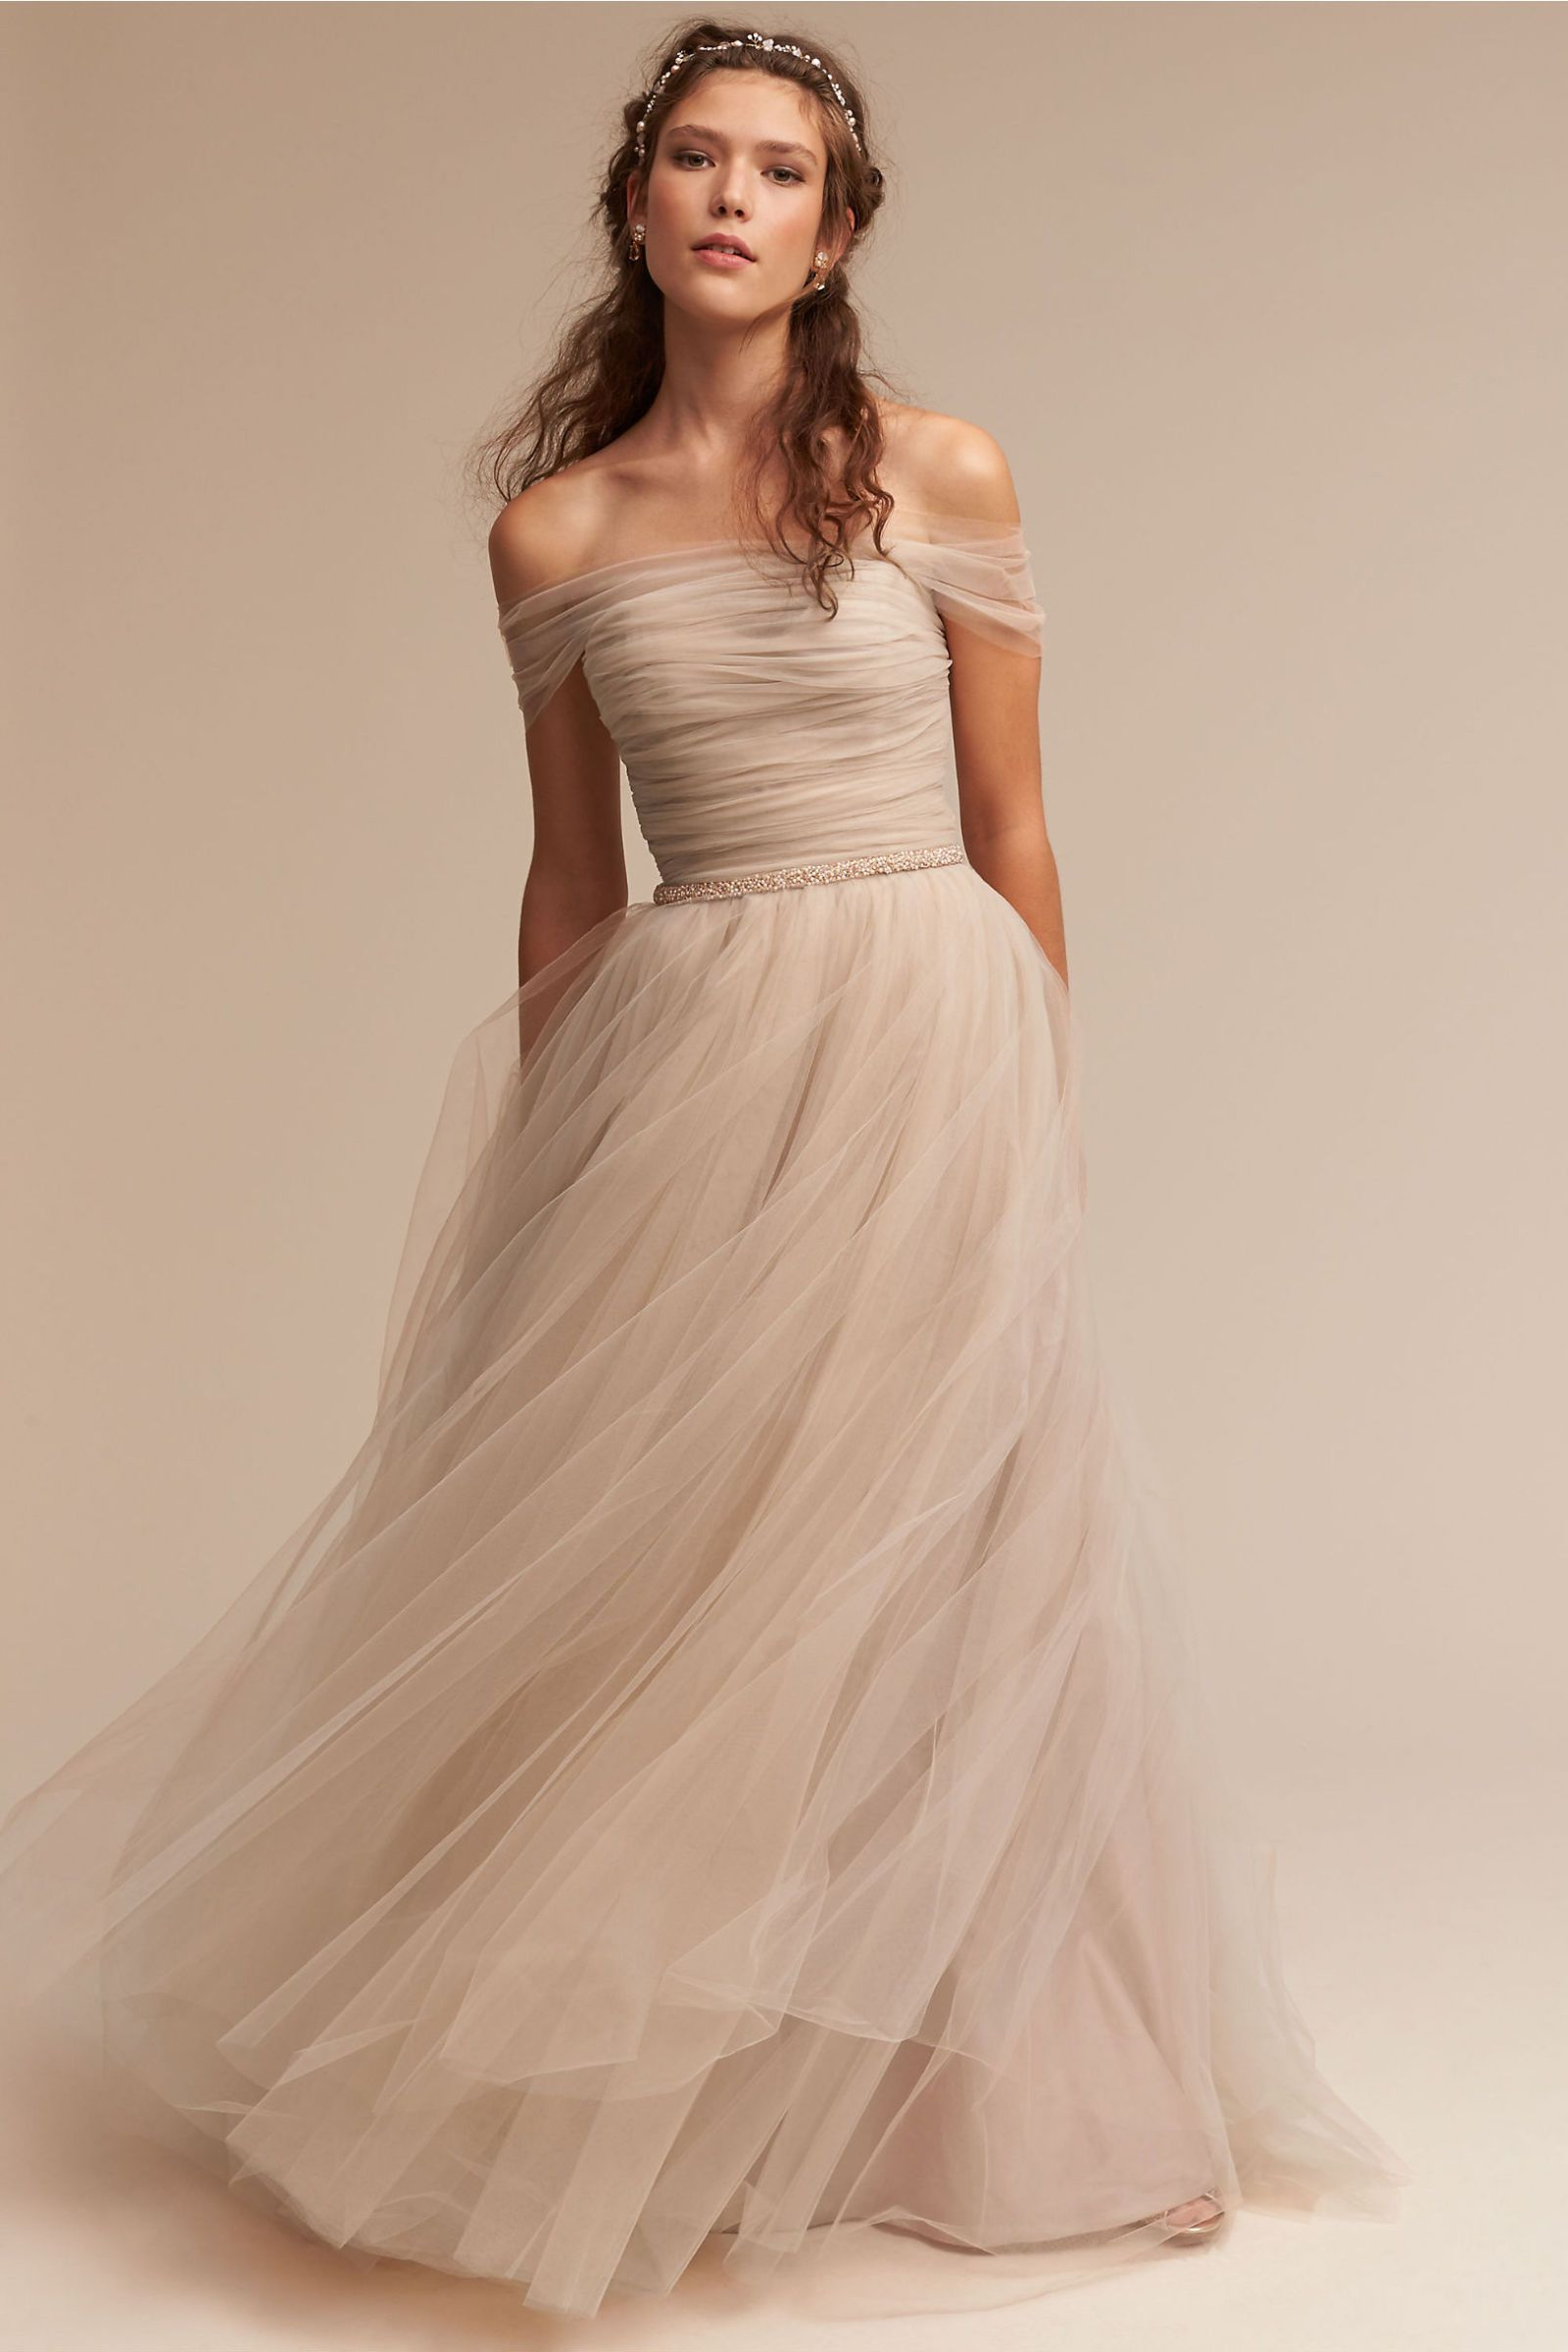 This color is taking over weddings in wedding dress wedding